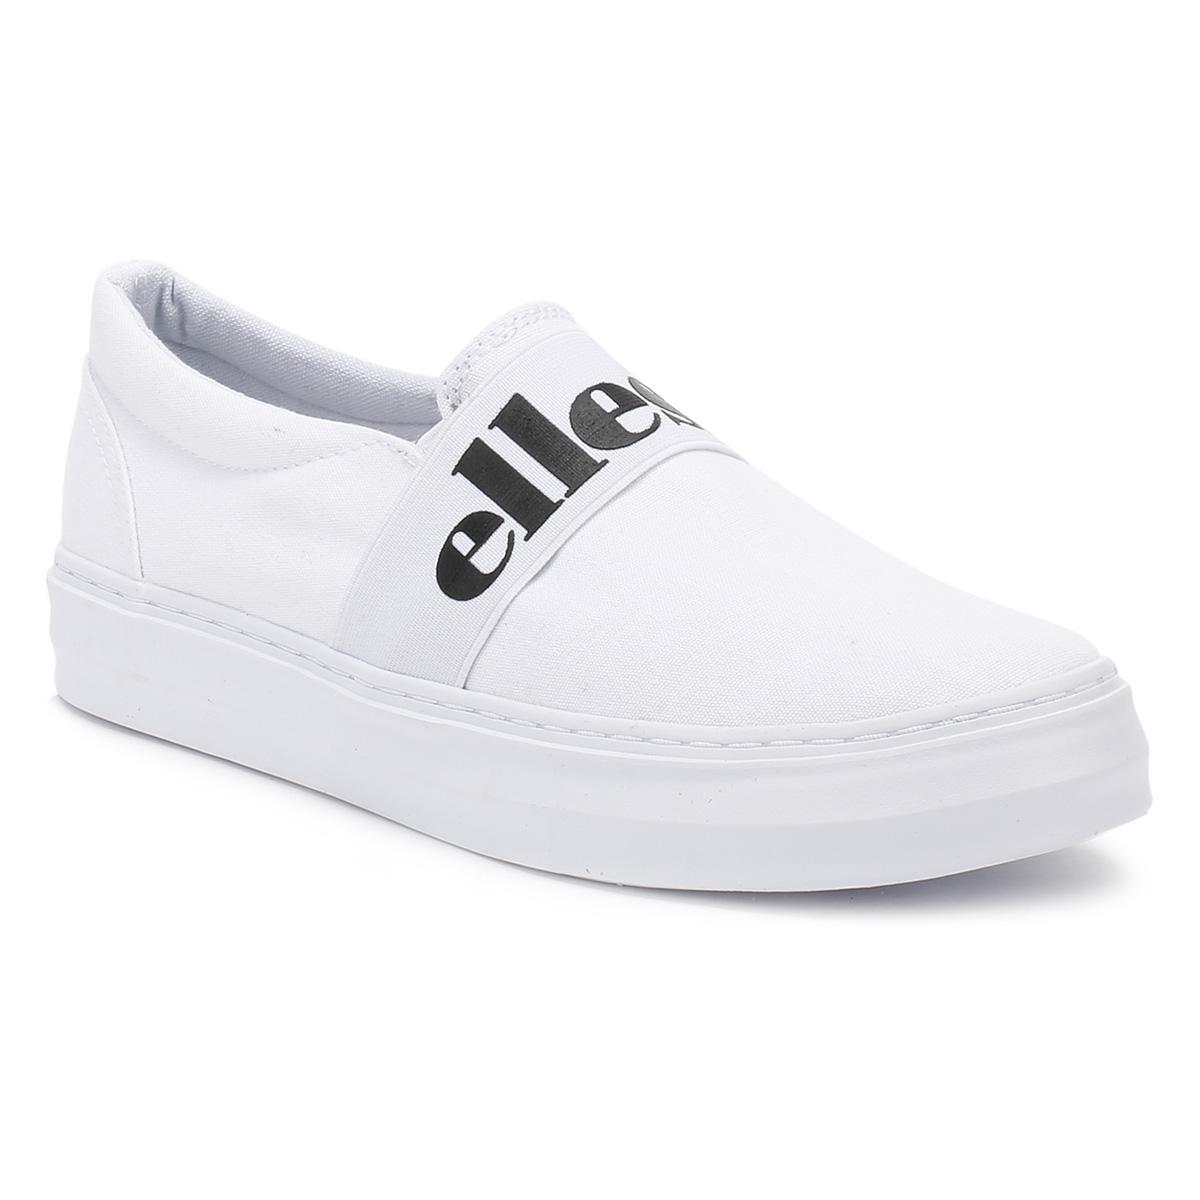 Ellesse Women's Casual Trainers